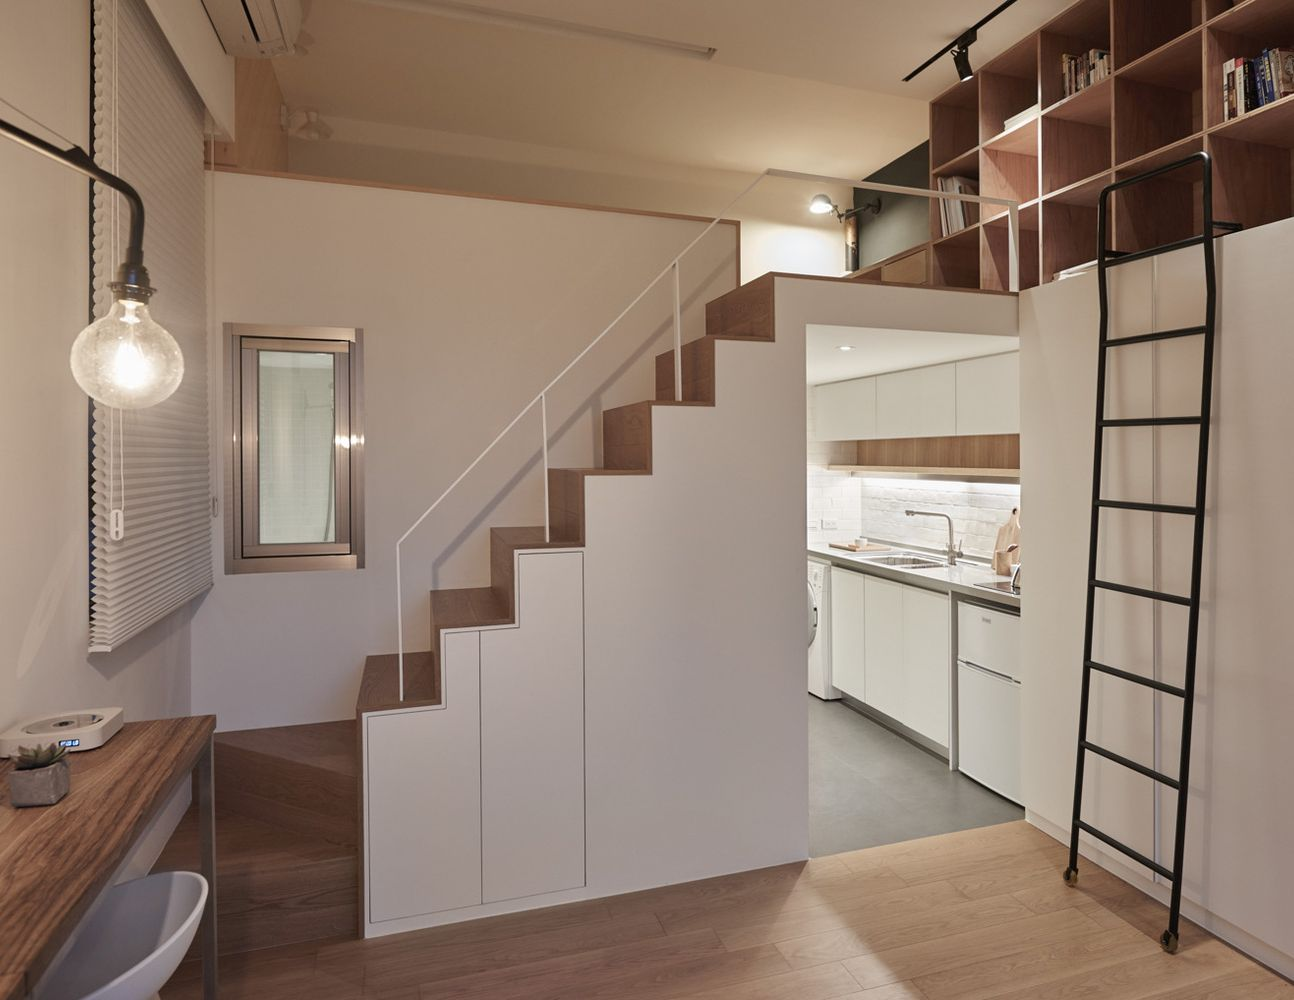 Interior design on 22 square meters solutions from taiwan houz buzz - Interior designs ...